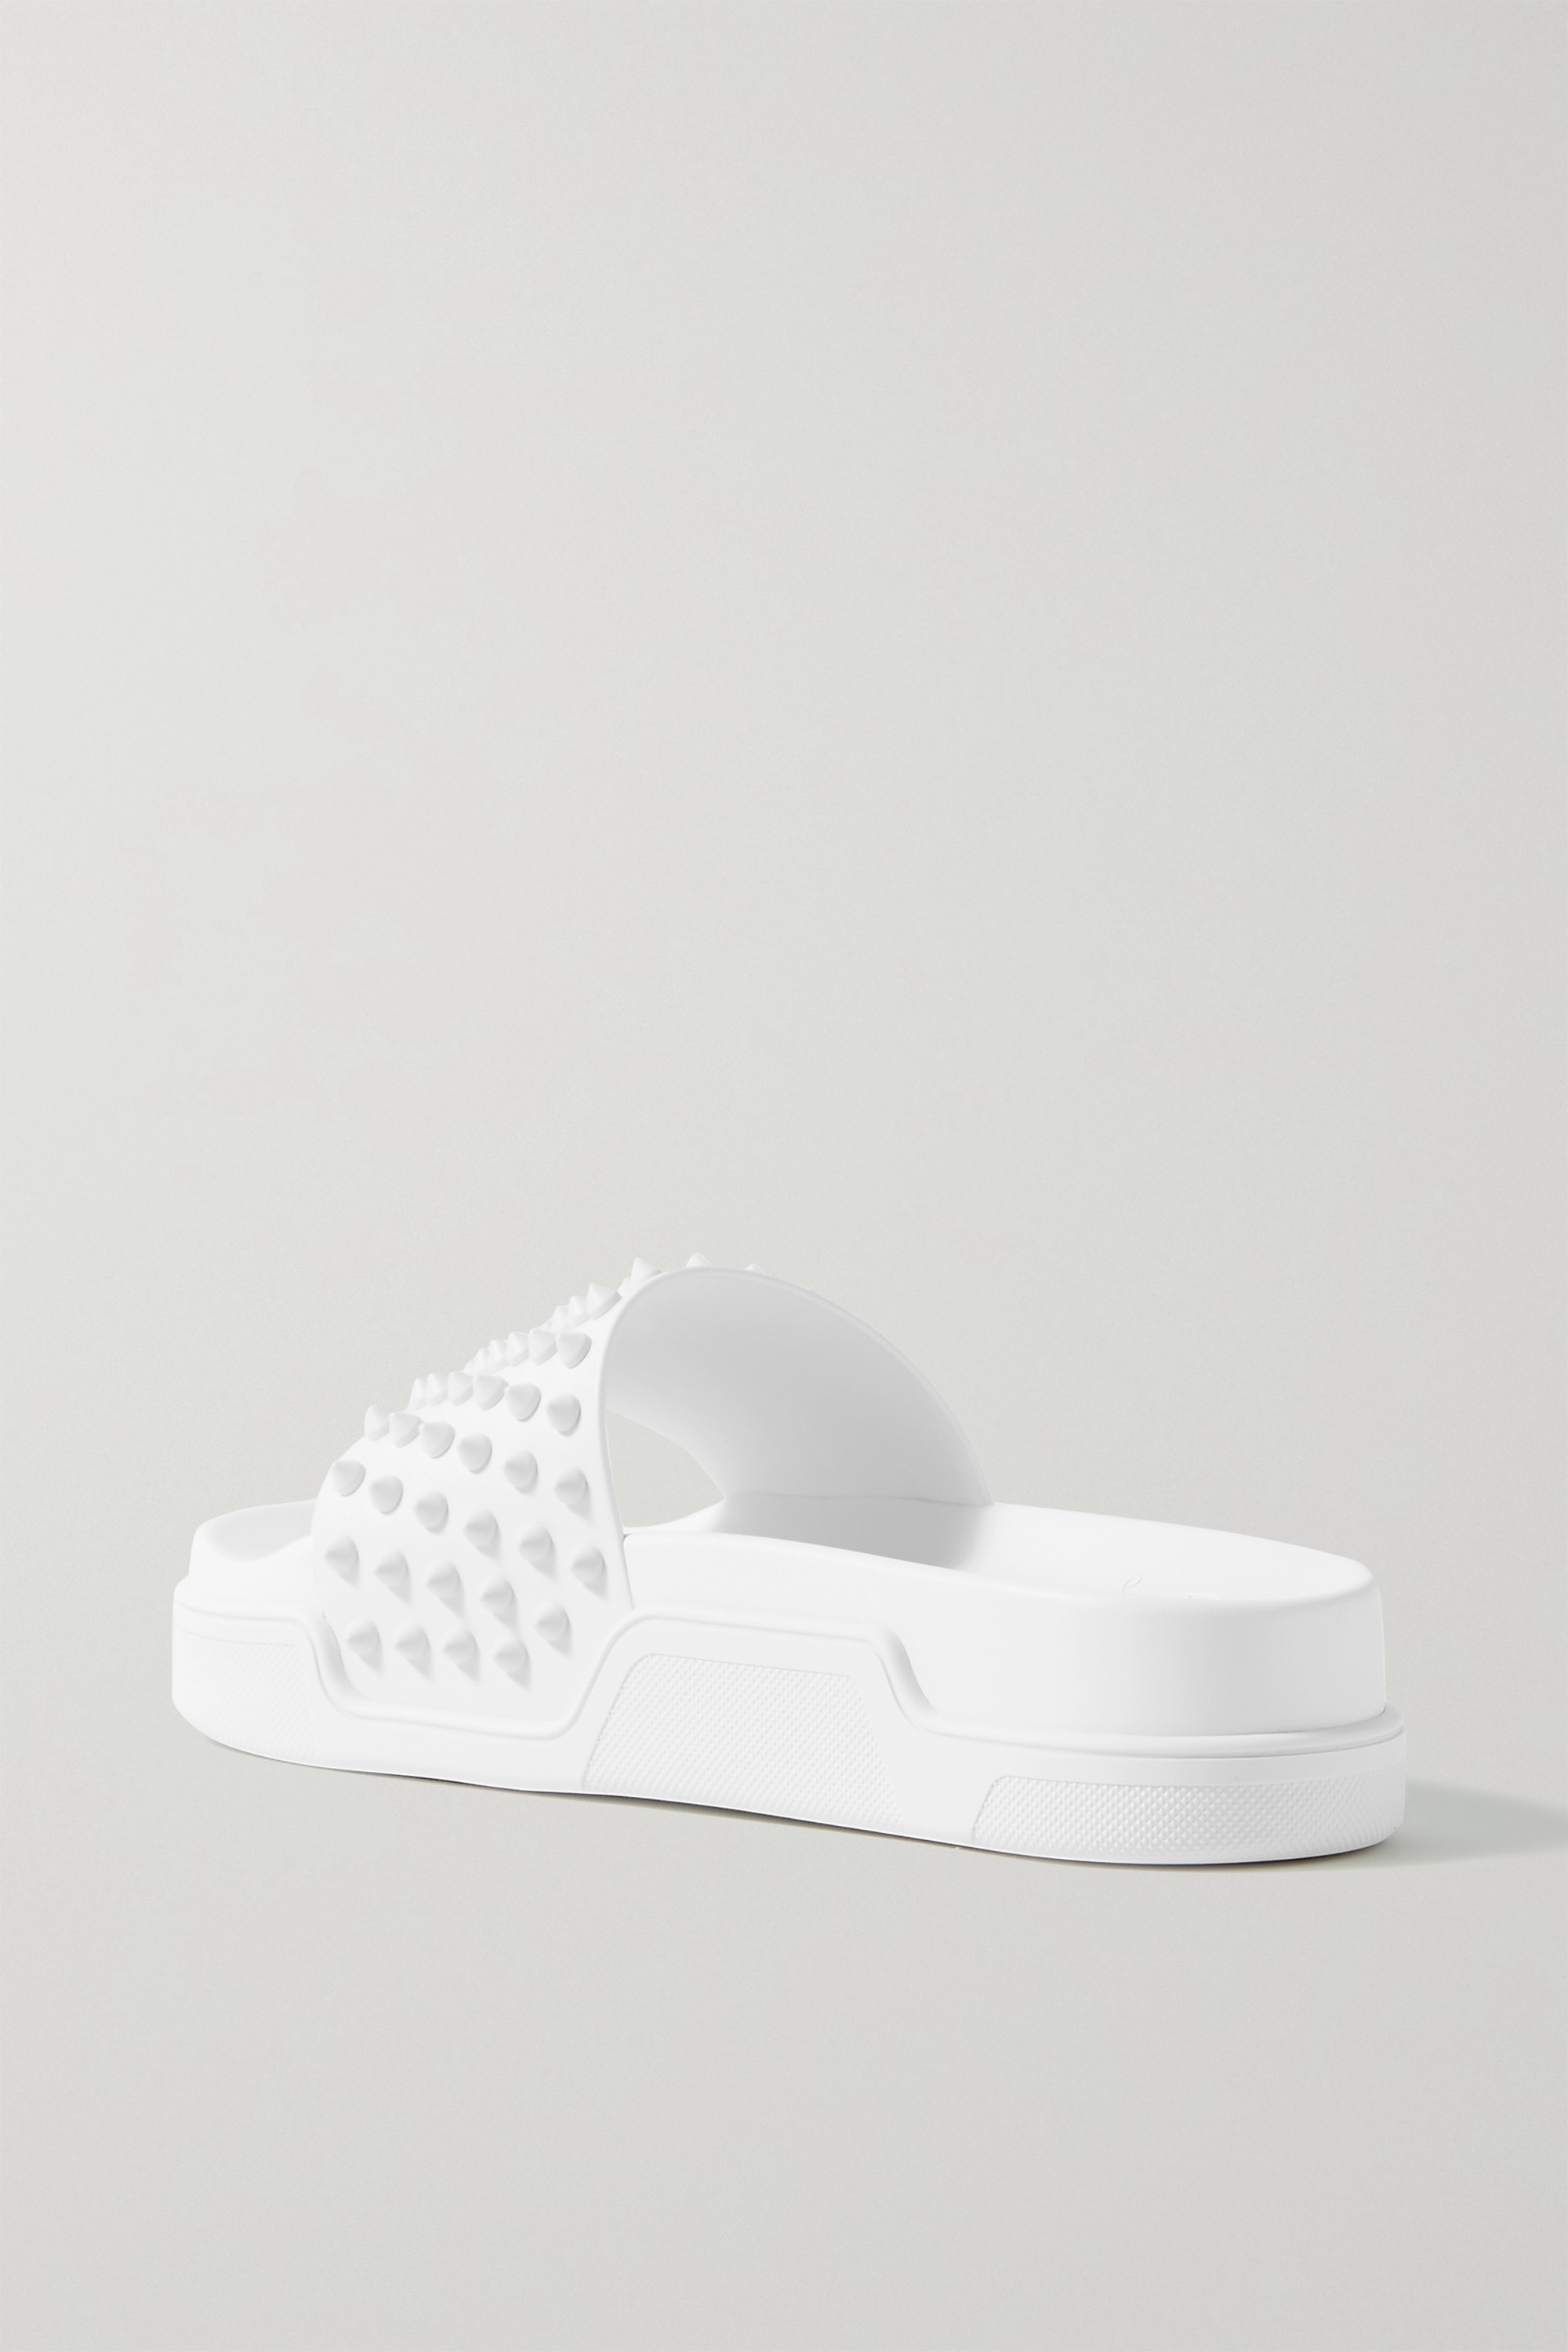 Christian Louboutin Pool Fun Donna 35 spiked leather slides